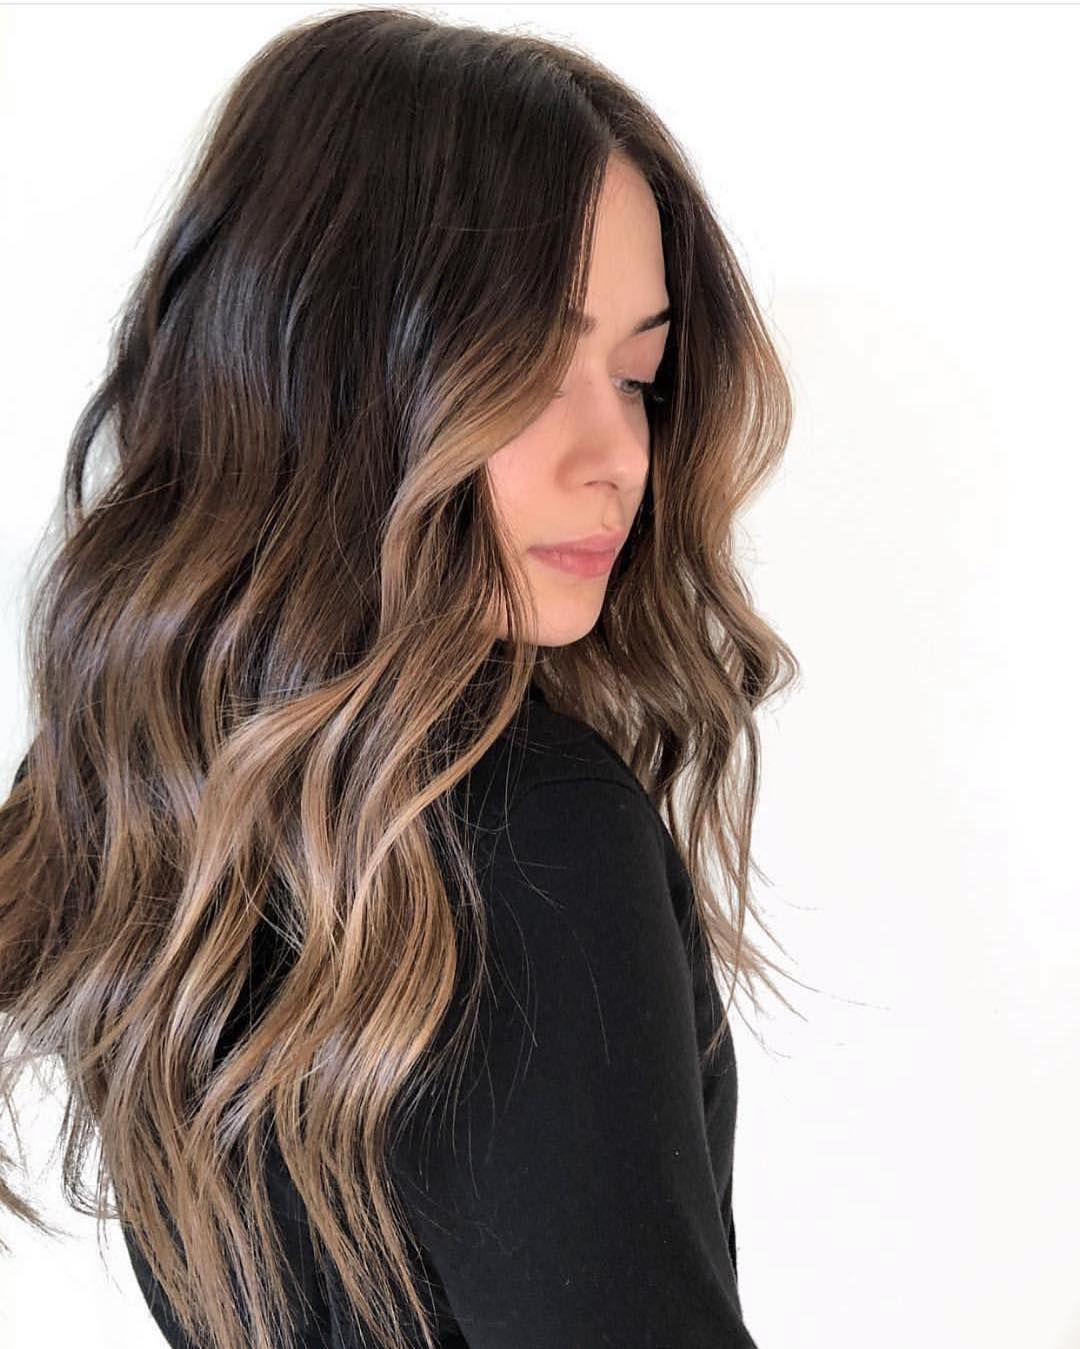 Hairstyles For Women Fall 2019 Hairstyles Pictures Balayage Hair Brown Hair Balayage Beautiful Hair Color